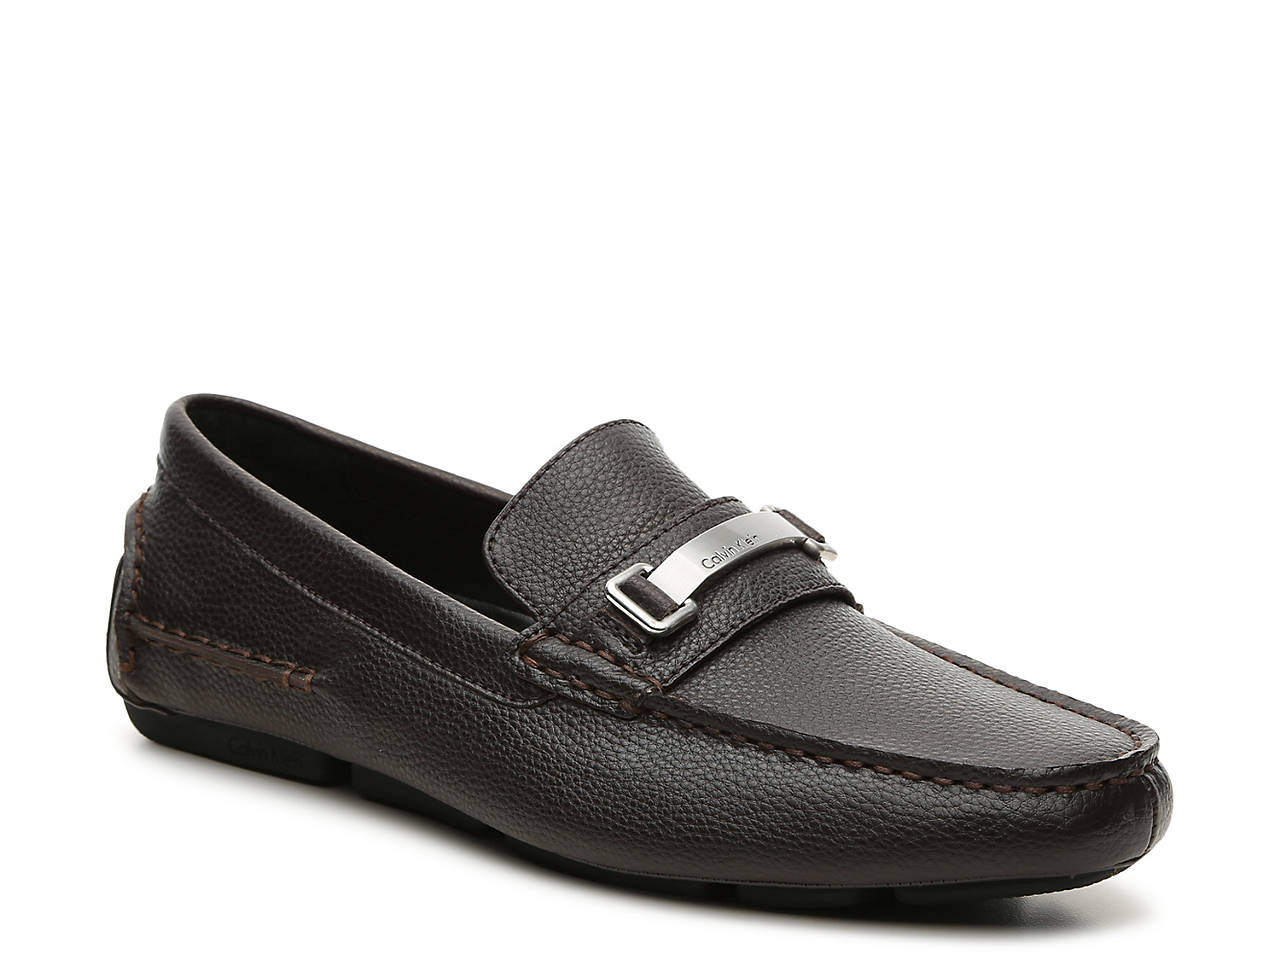 Outlet Comfortable FOOTWEAR - Loafers Calvin Klein New Styles For Sale Get Authentic For Sale Release Dates Outlet 100% Authentic tSpbbS